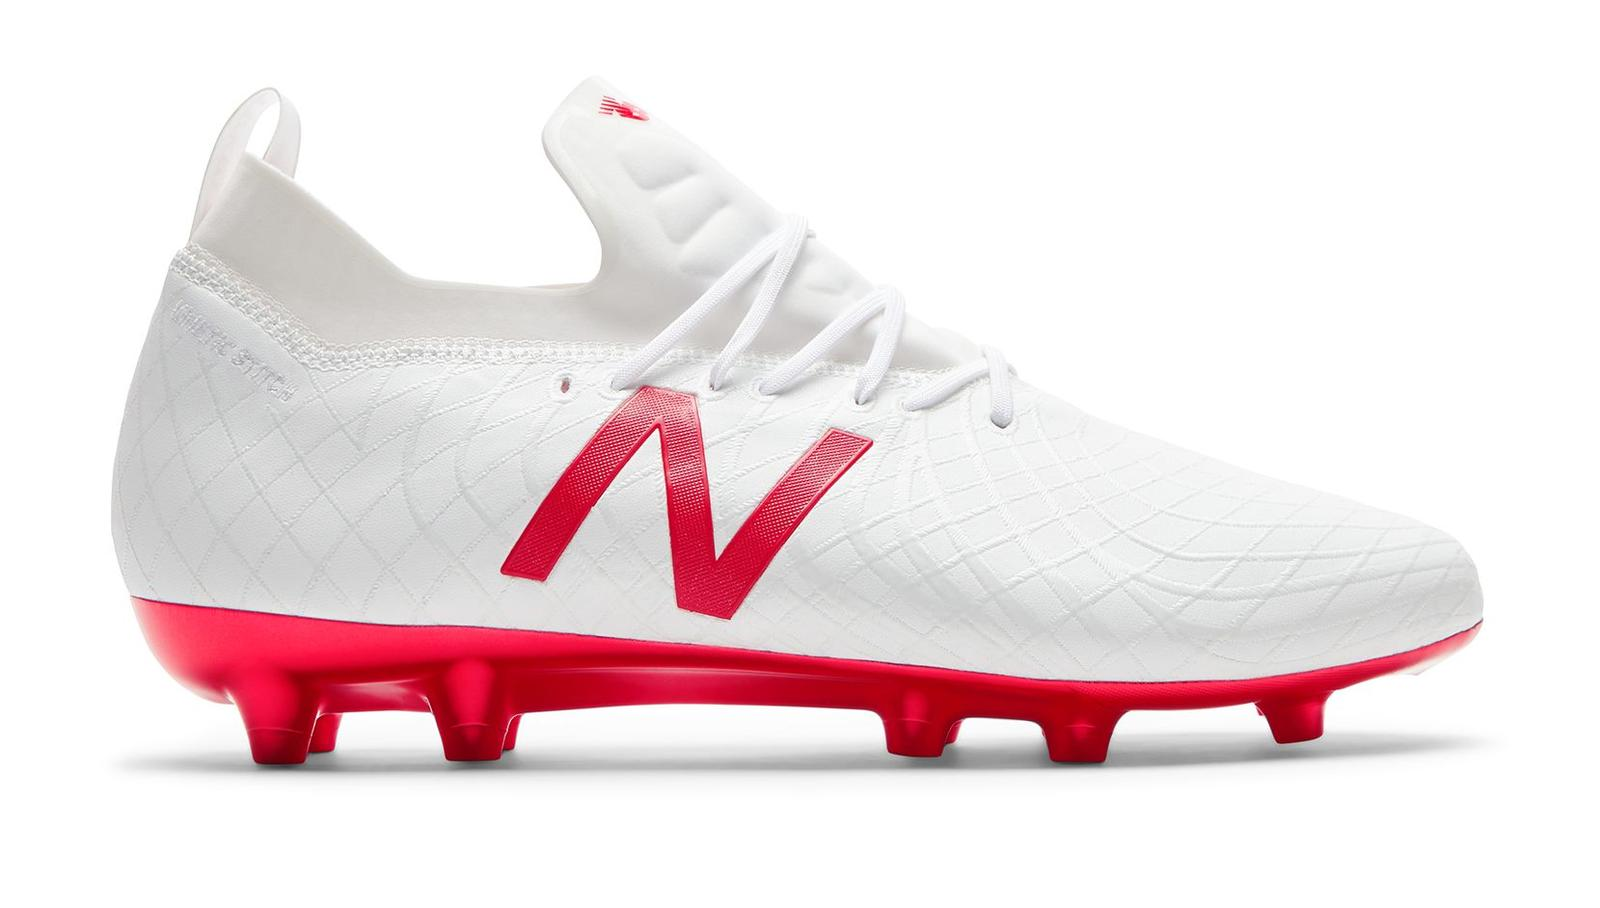 Otruska Pack New Balance 2018 World Cup Boots Collection